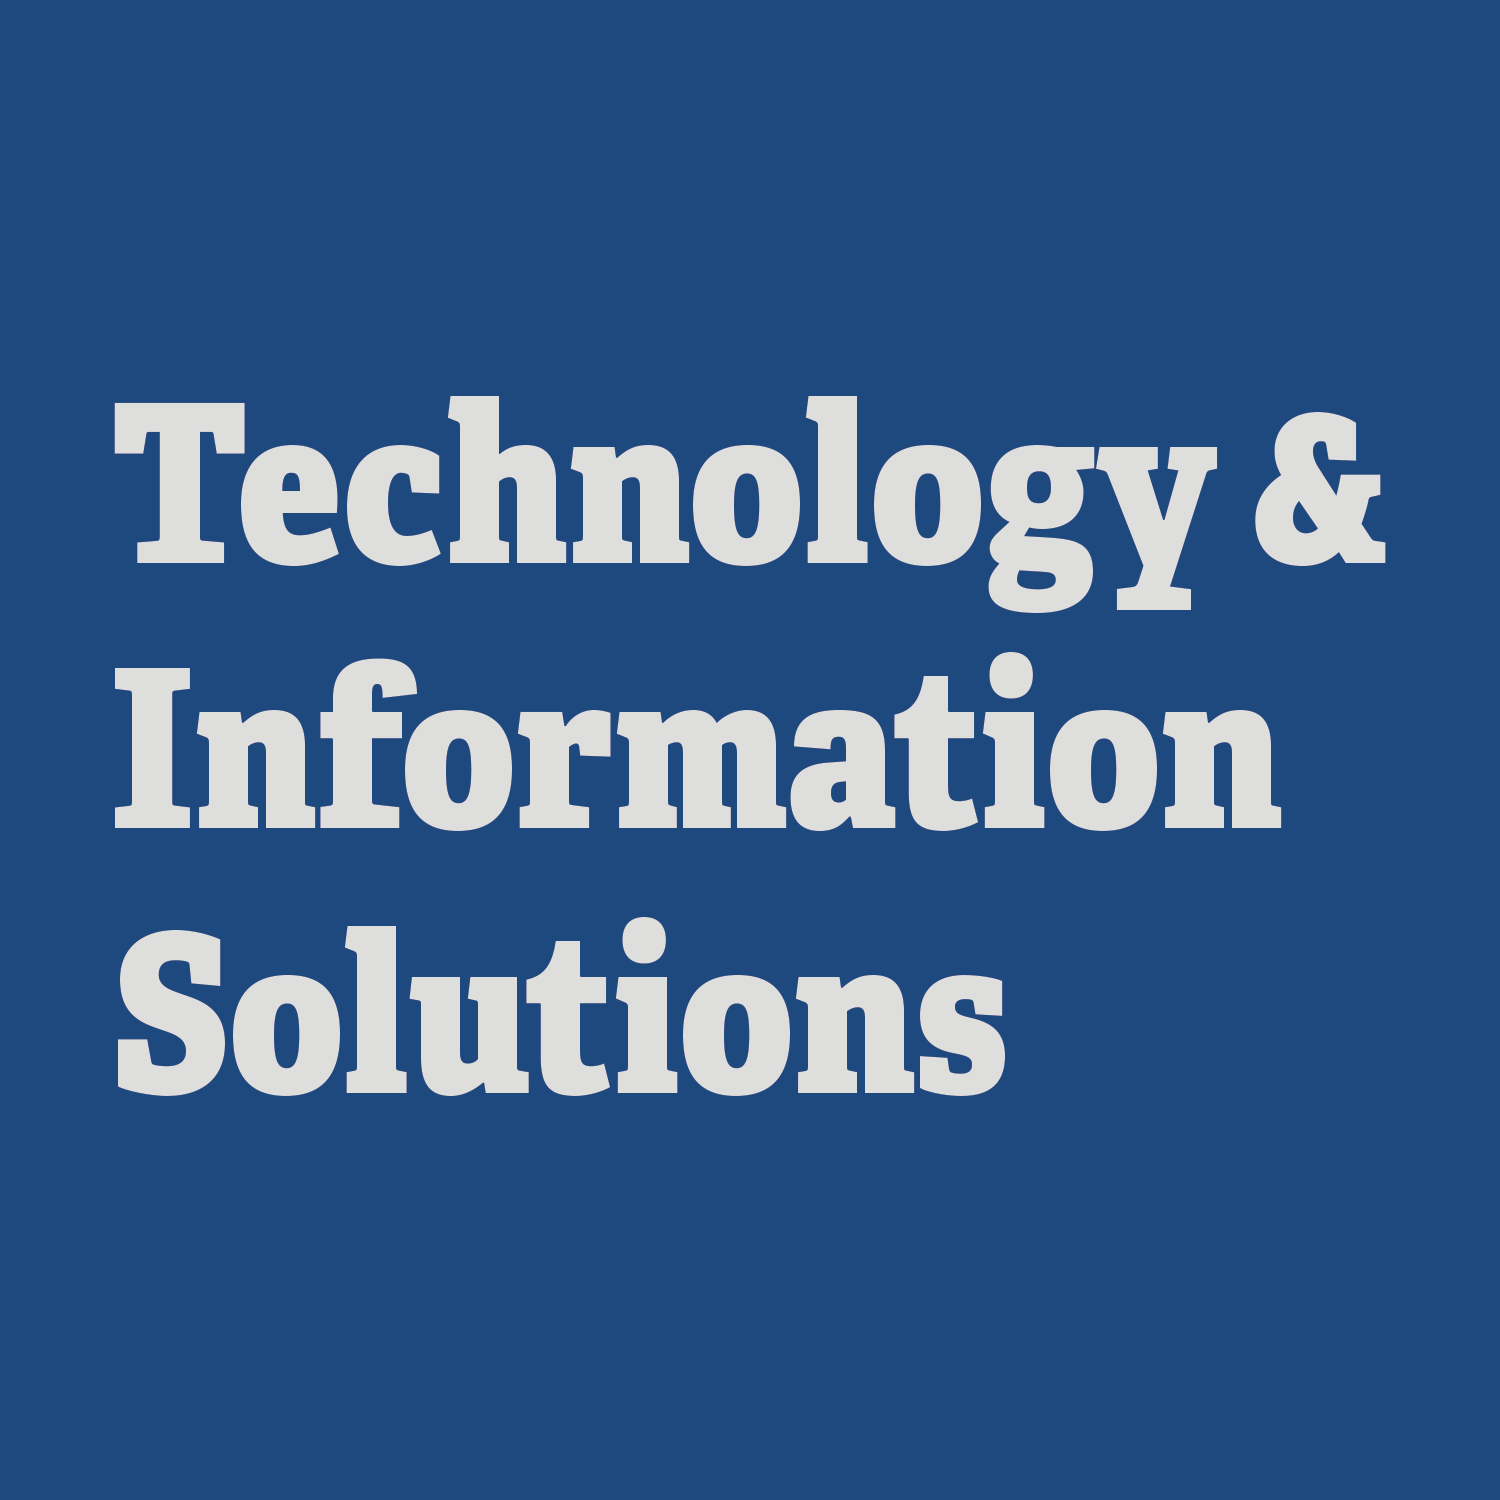 domains in information technology